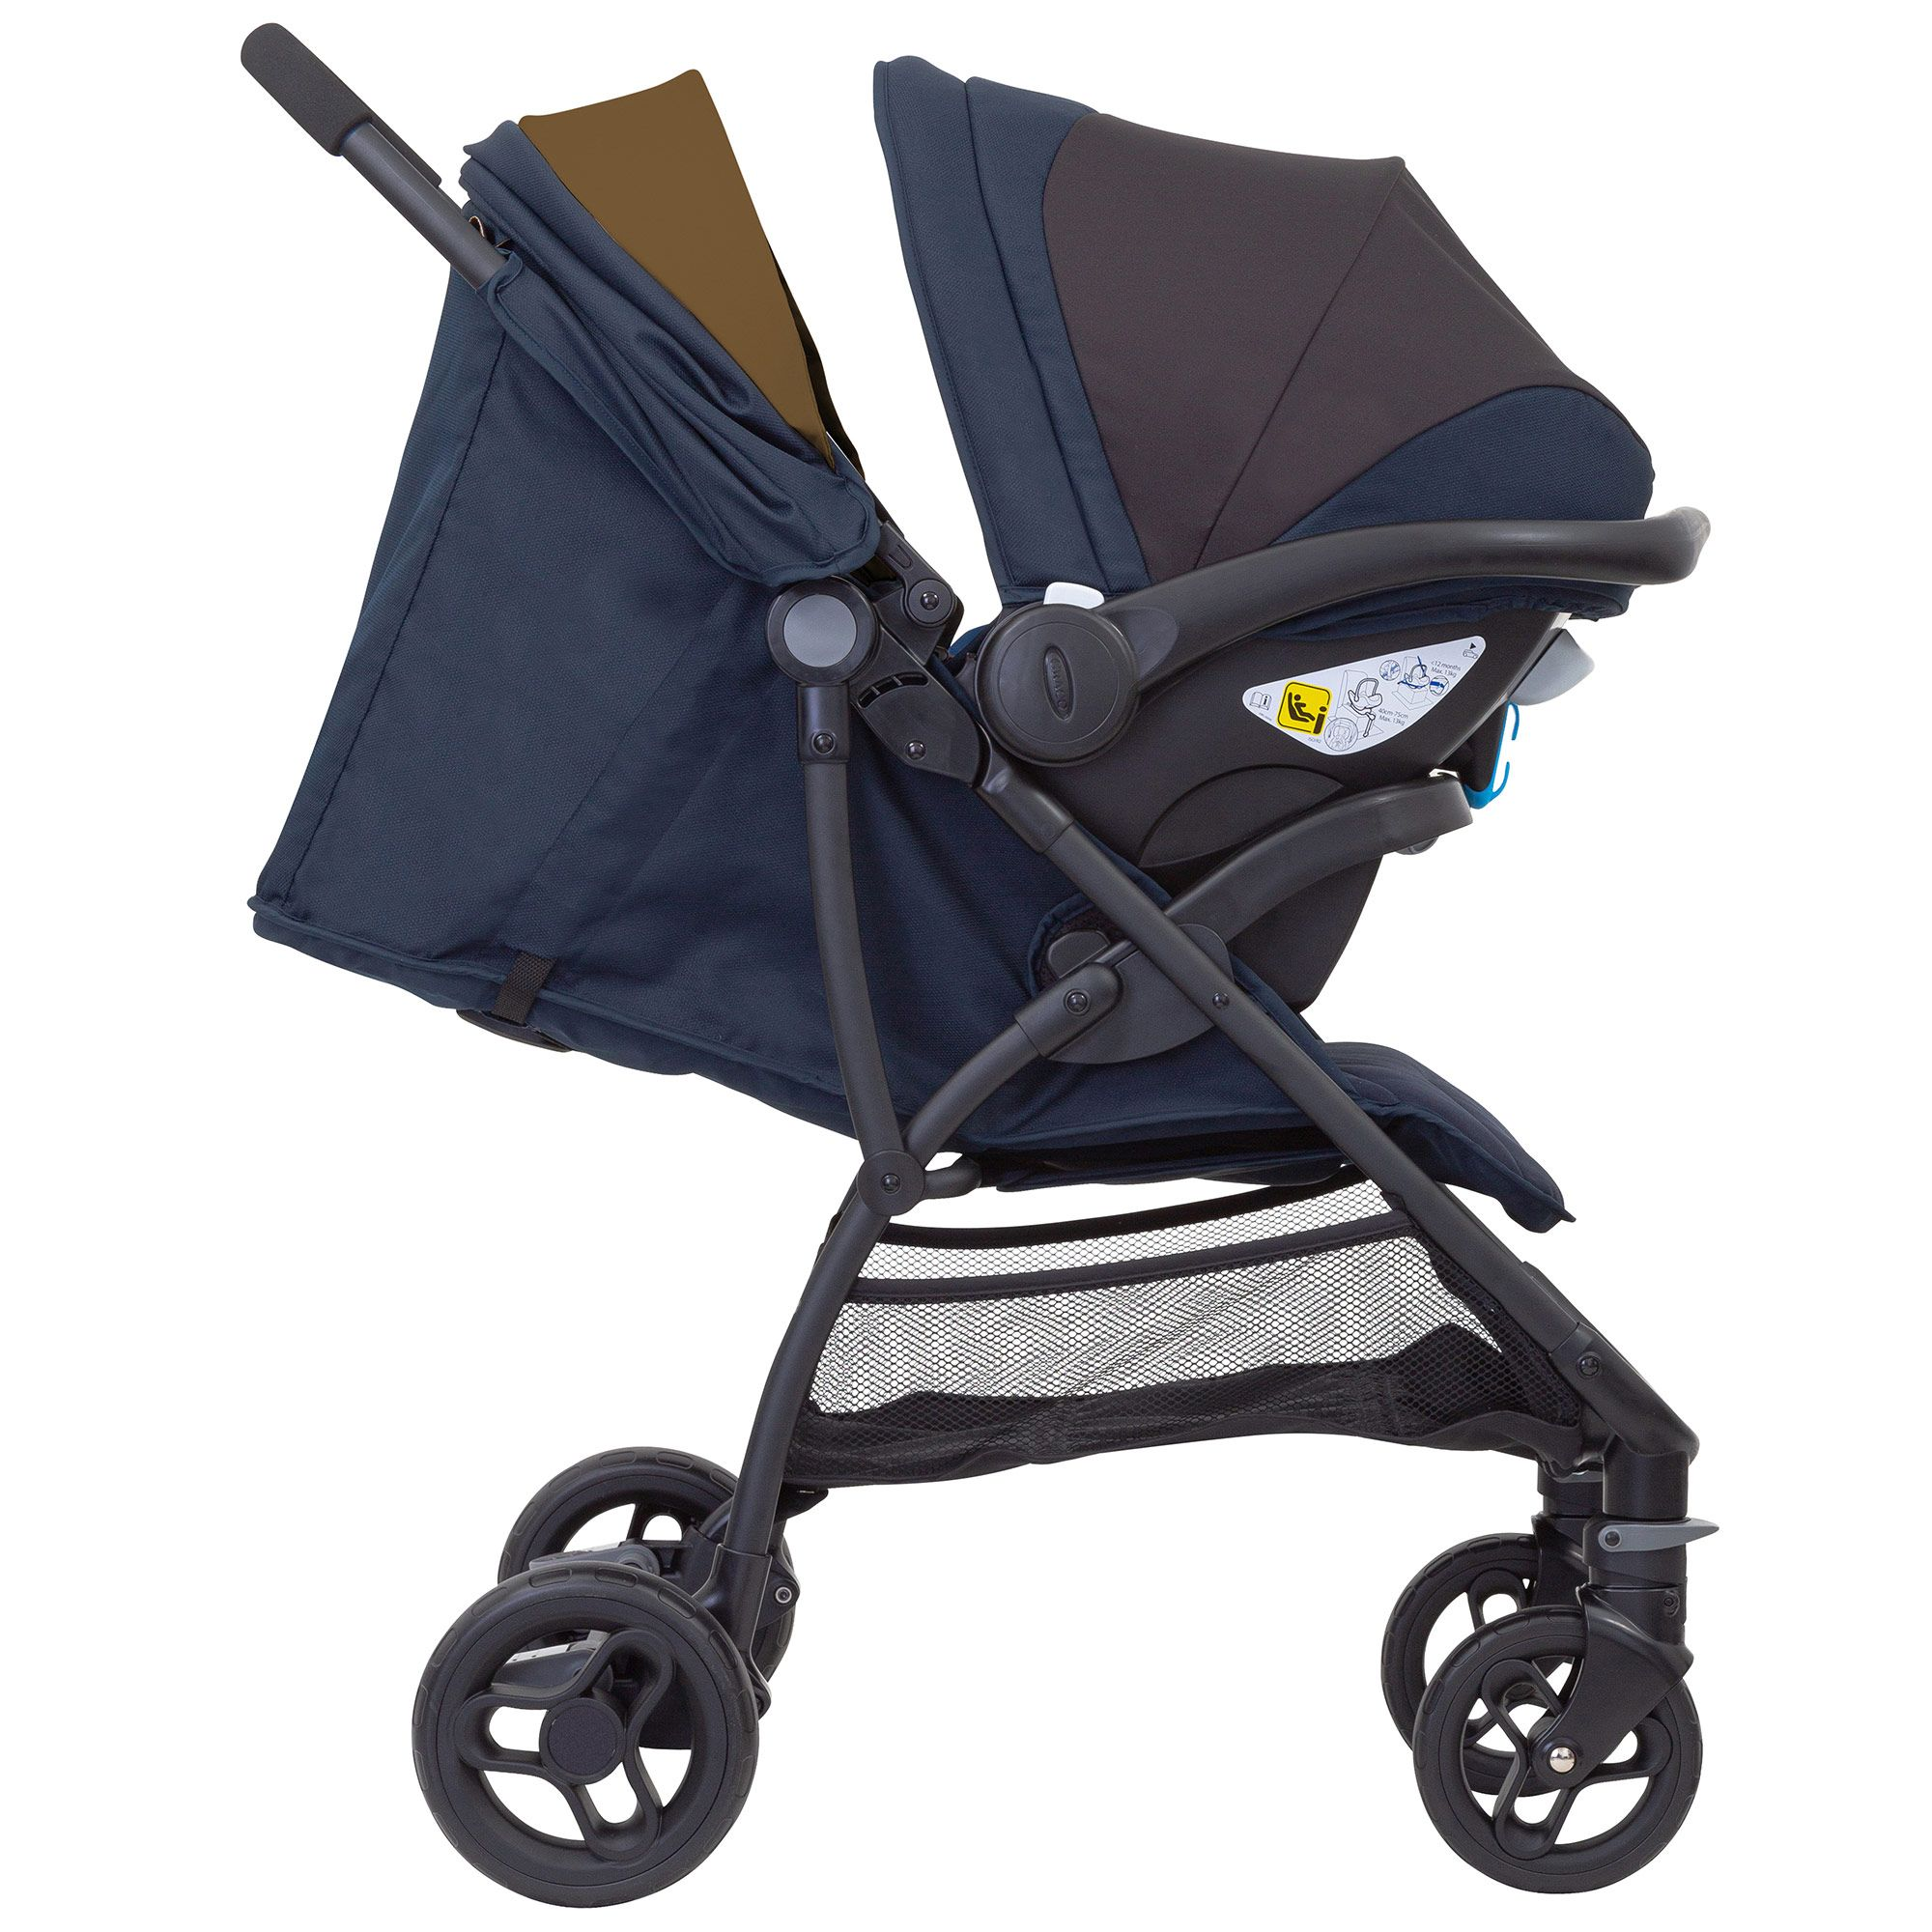 Pushchair /& Car Seat, Birth to 3 Years Approx, 0-15kg with Raincover Graco Breaze Lite i-Size Travel System Black